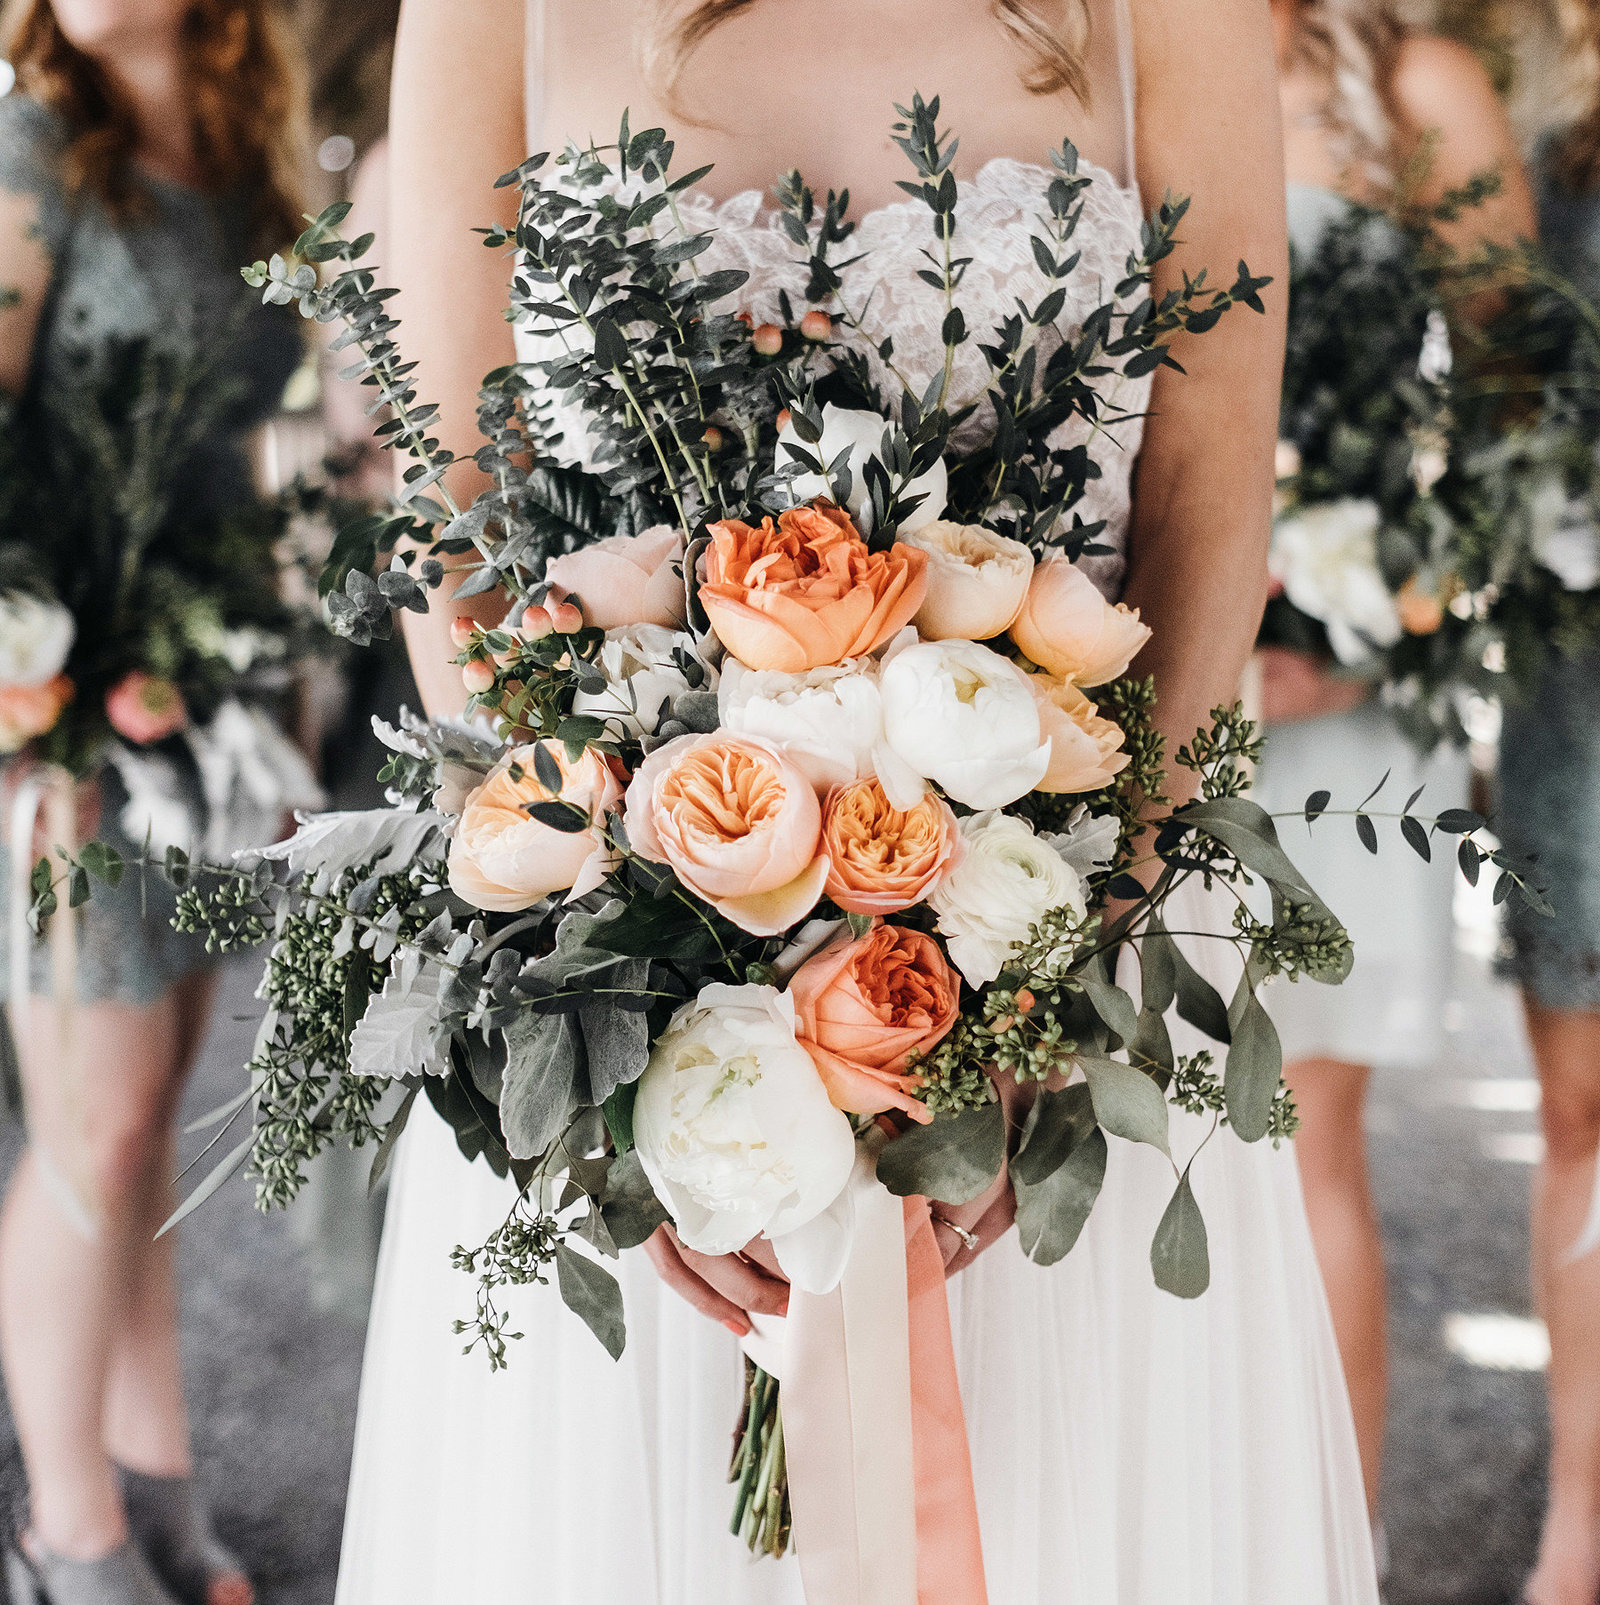 athena-and-camron-seattle-wedding-photographer-dairyland-snohomish-rustic-barn-wedding-flowers-styling-inspiration-lauren-madison-55